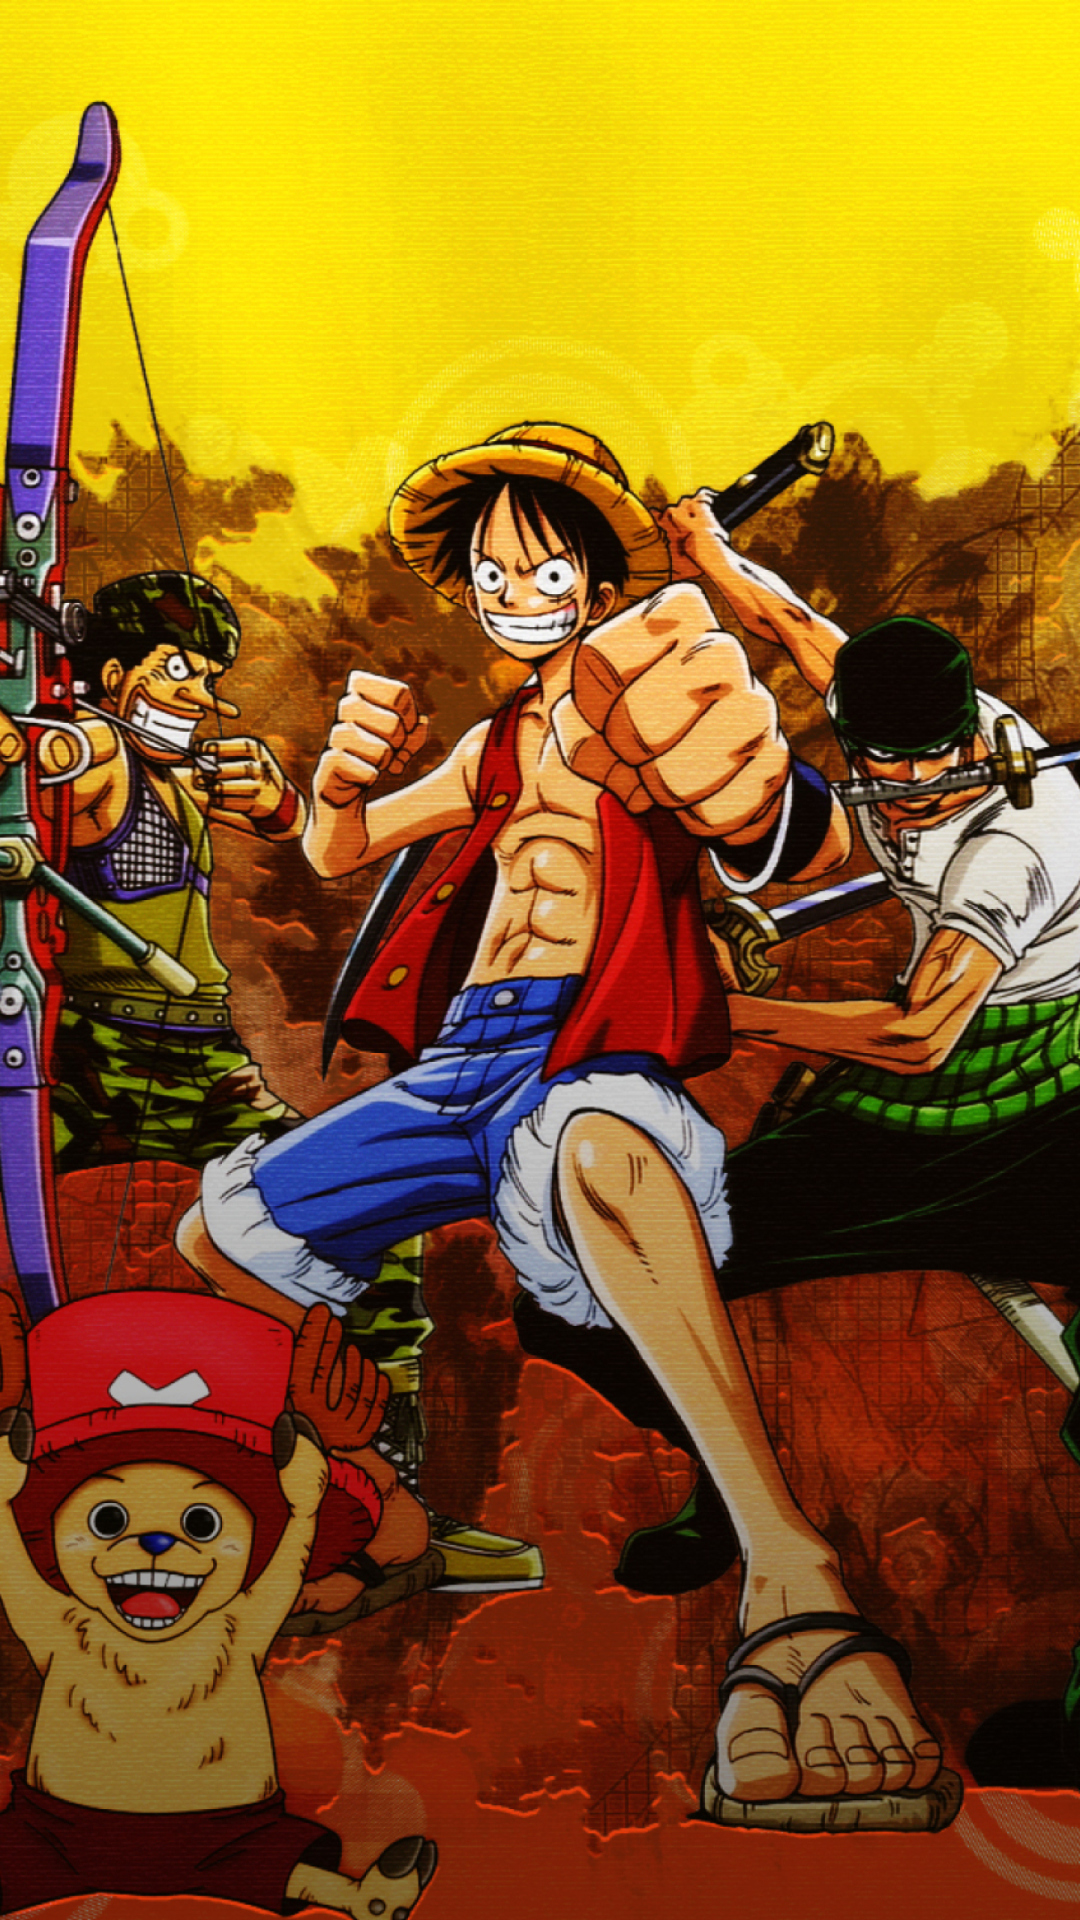 Free Download One Piece Iphone Wallpapers Hd 1080x1920 For